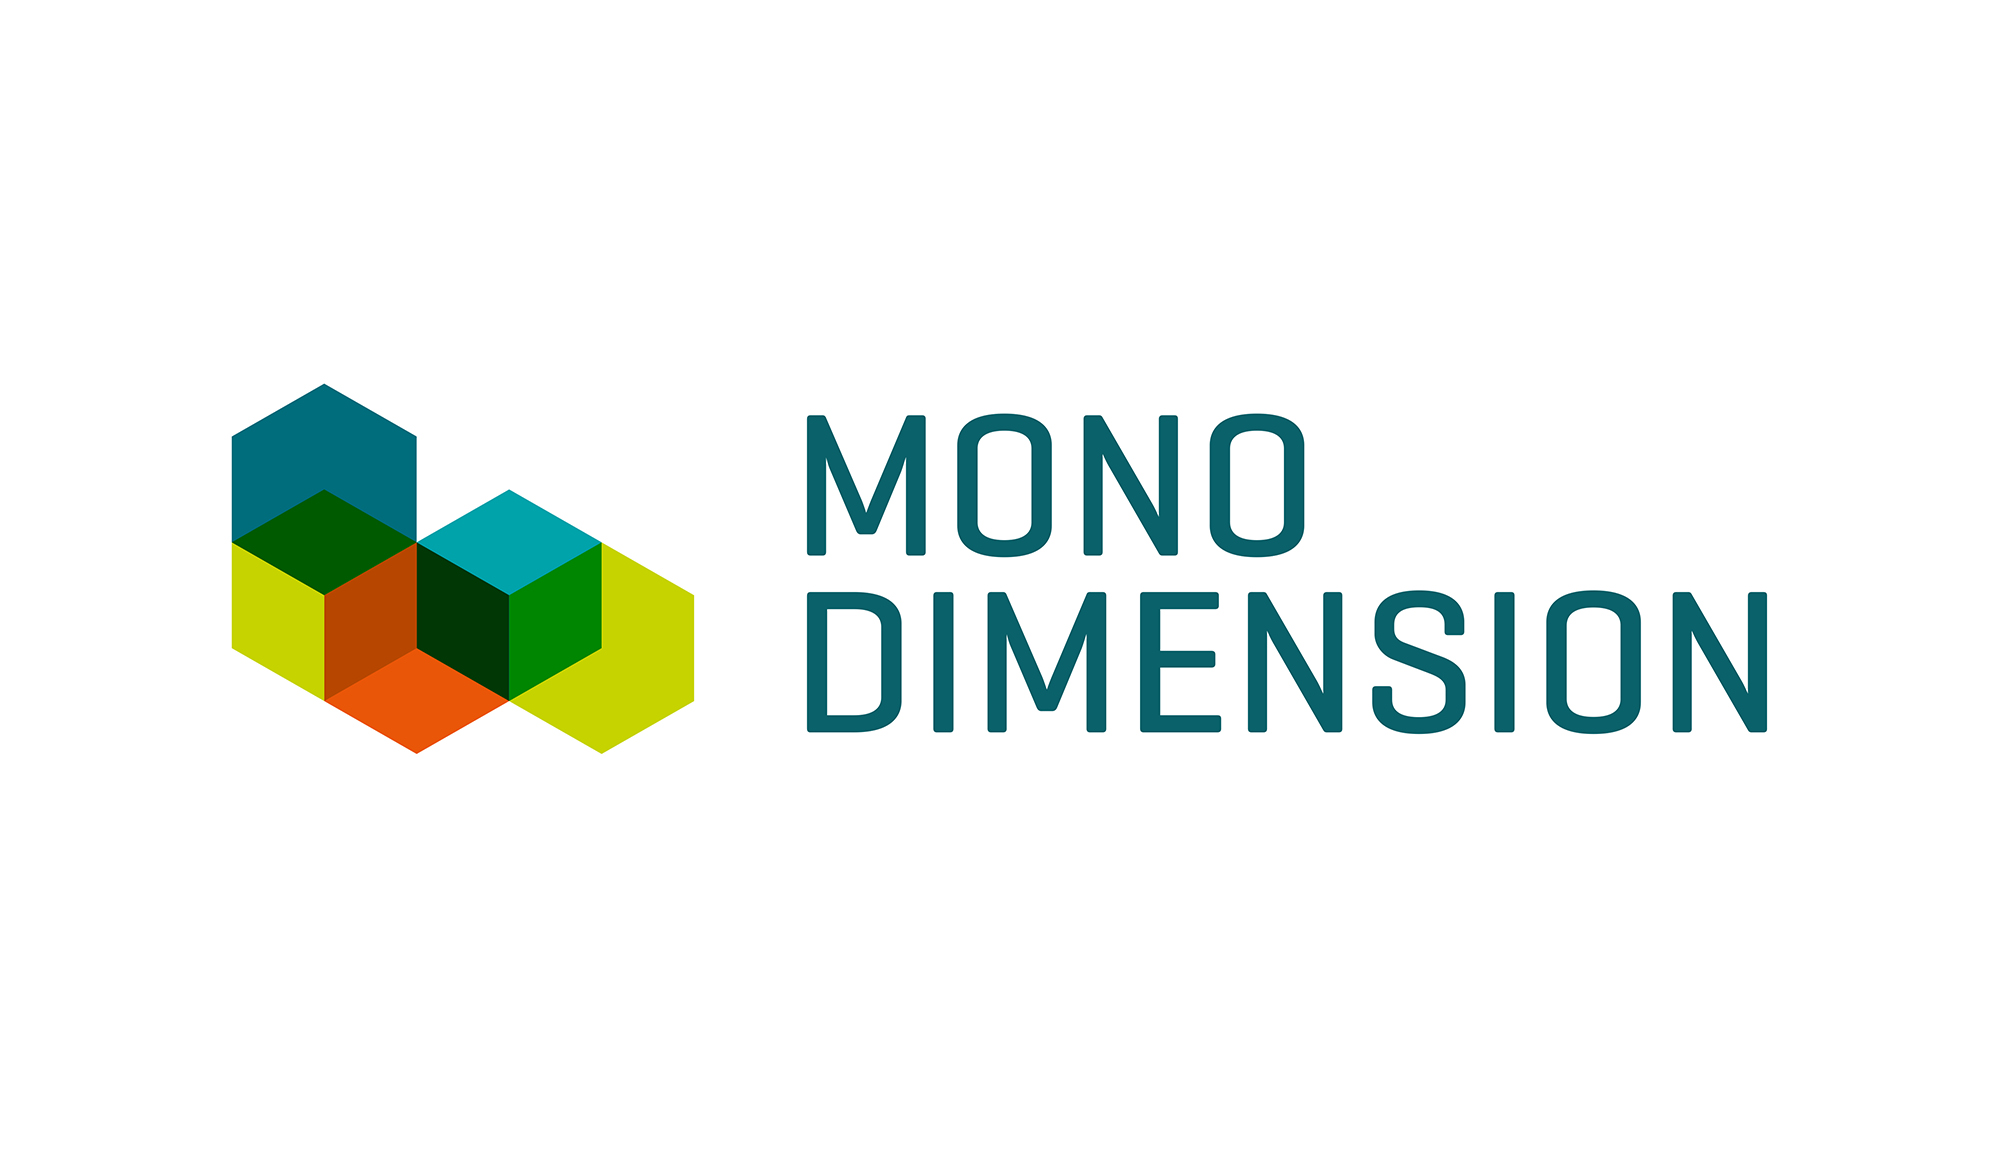 mono_dimension_logo